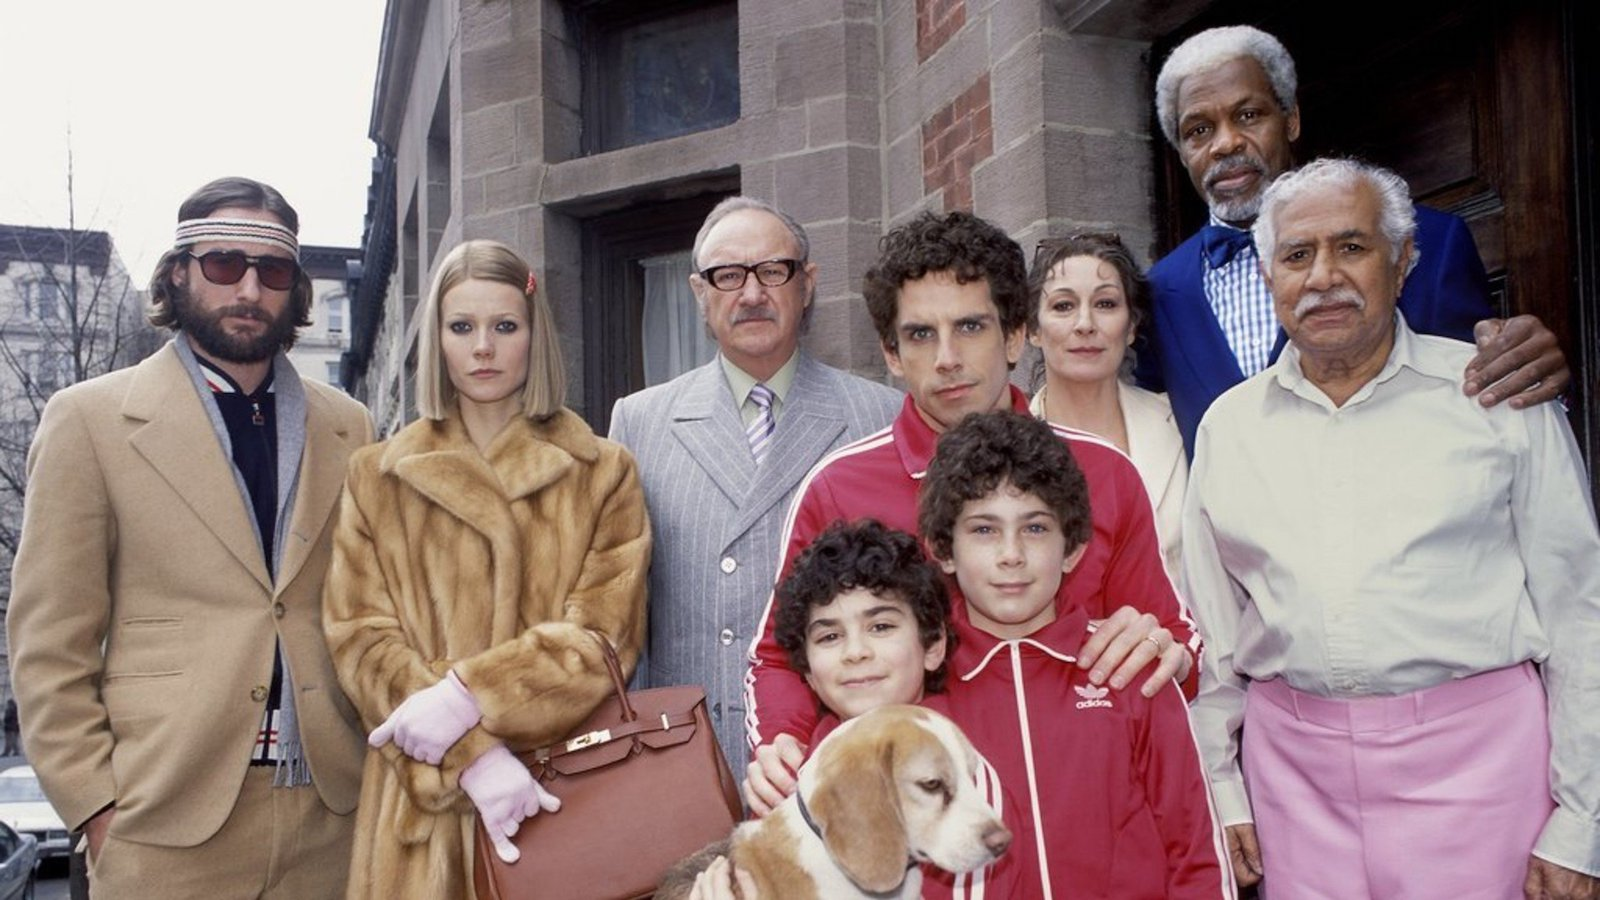 Seminar: The Royal Tenenbaums